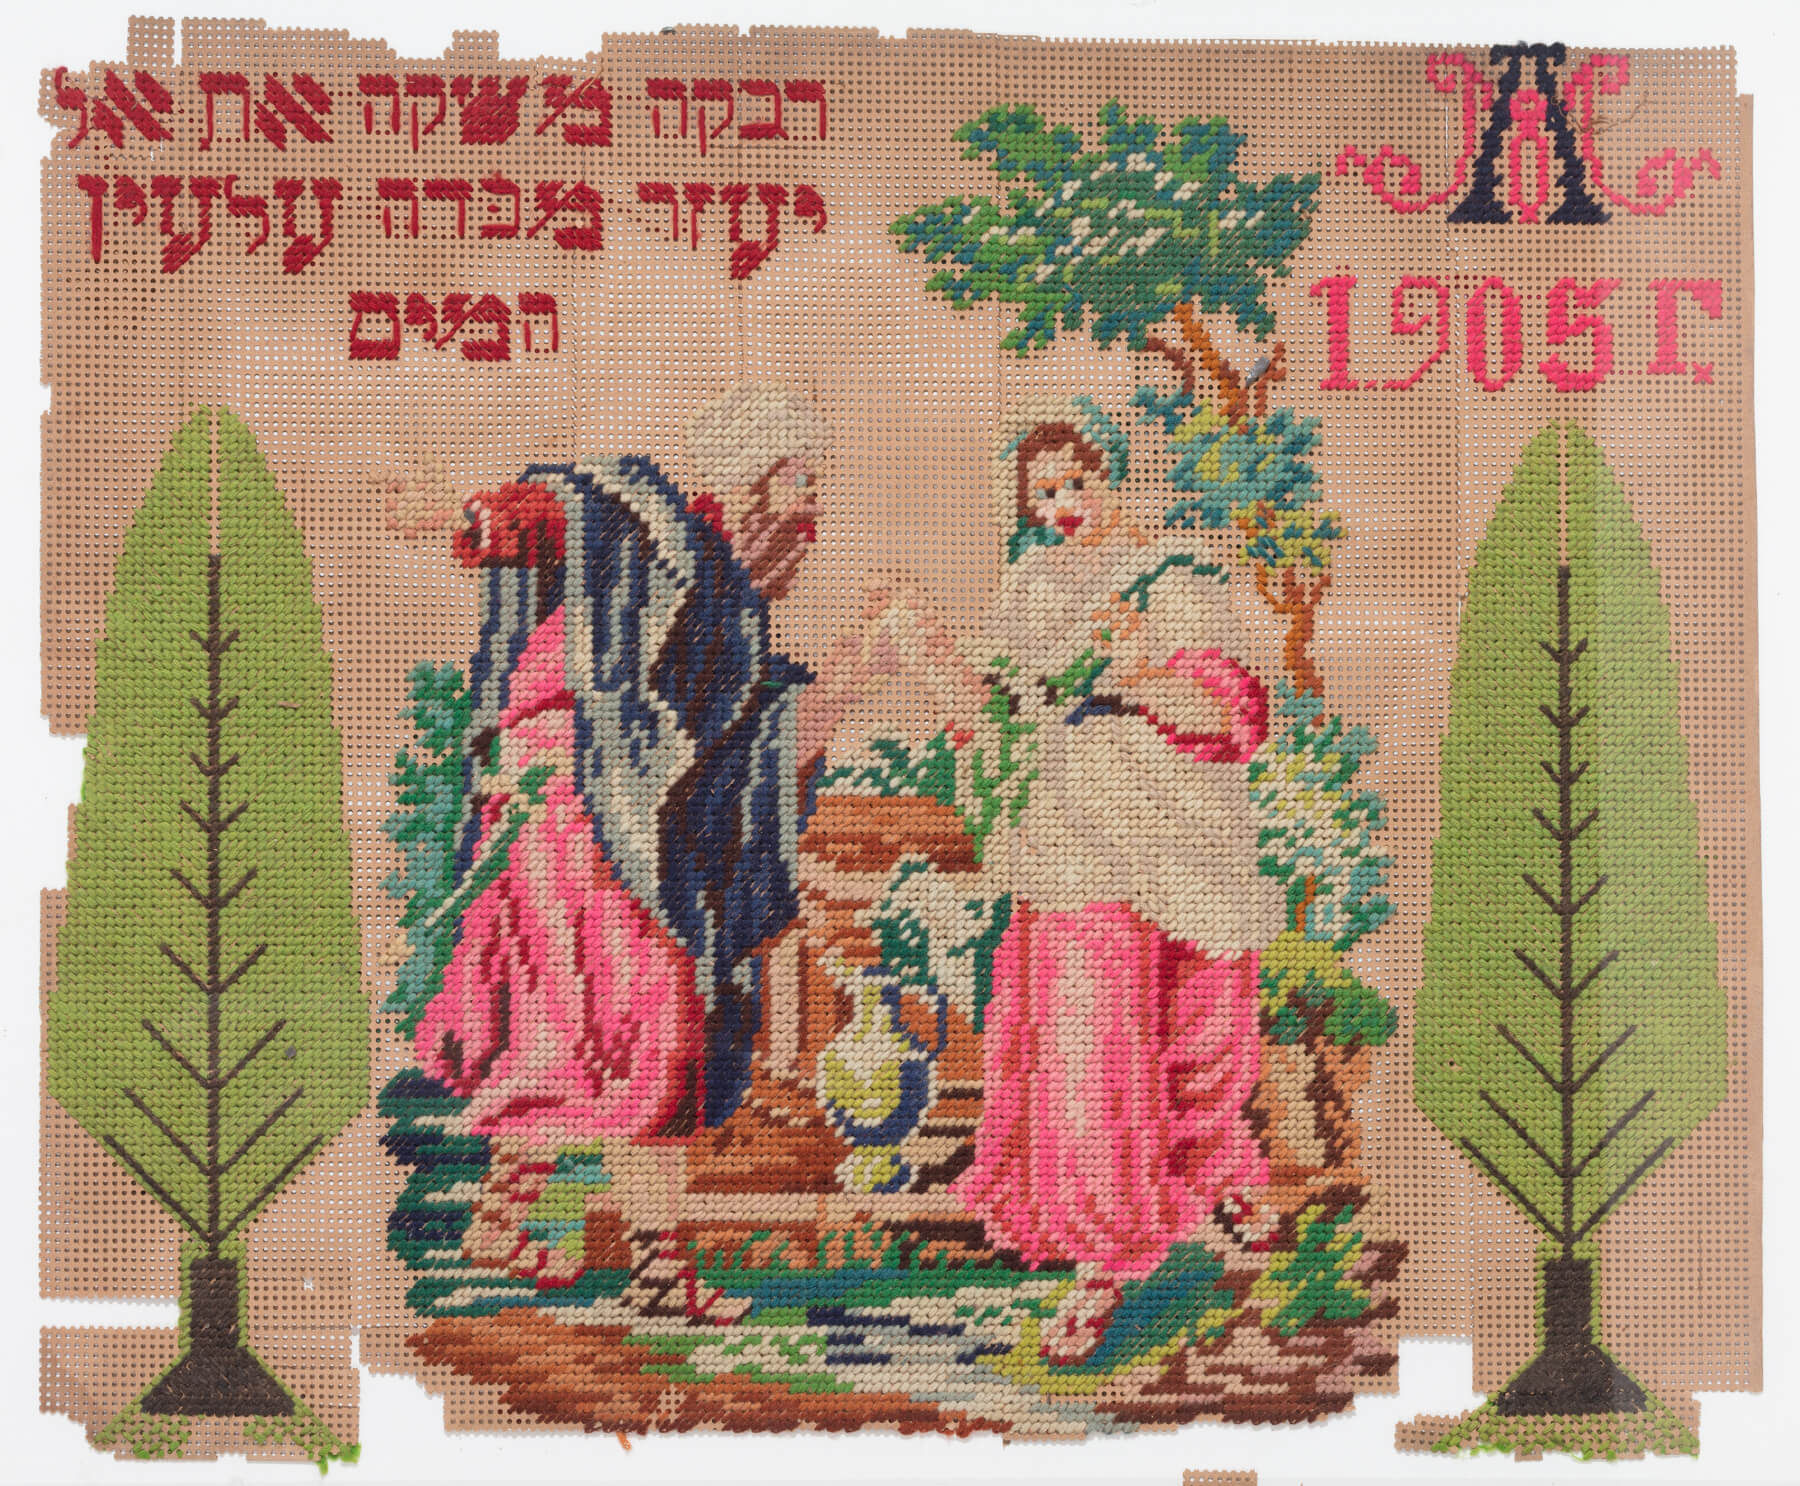 137. A Needlepoint Of Rivkah And Eliezer